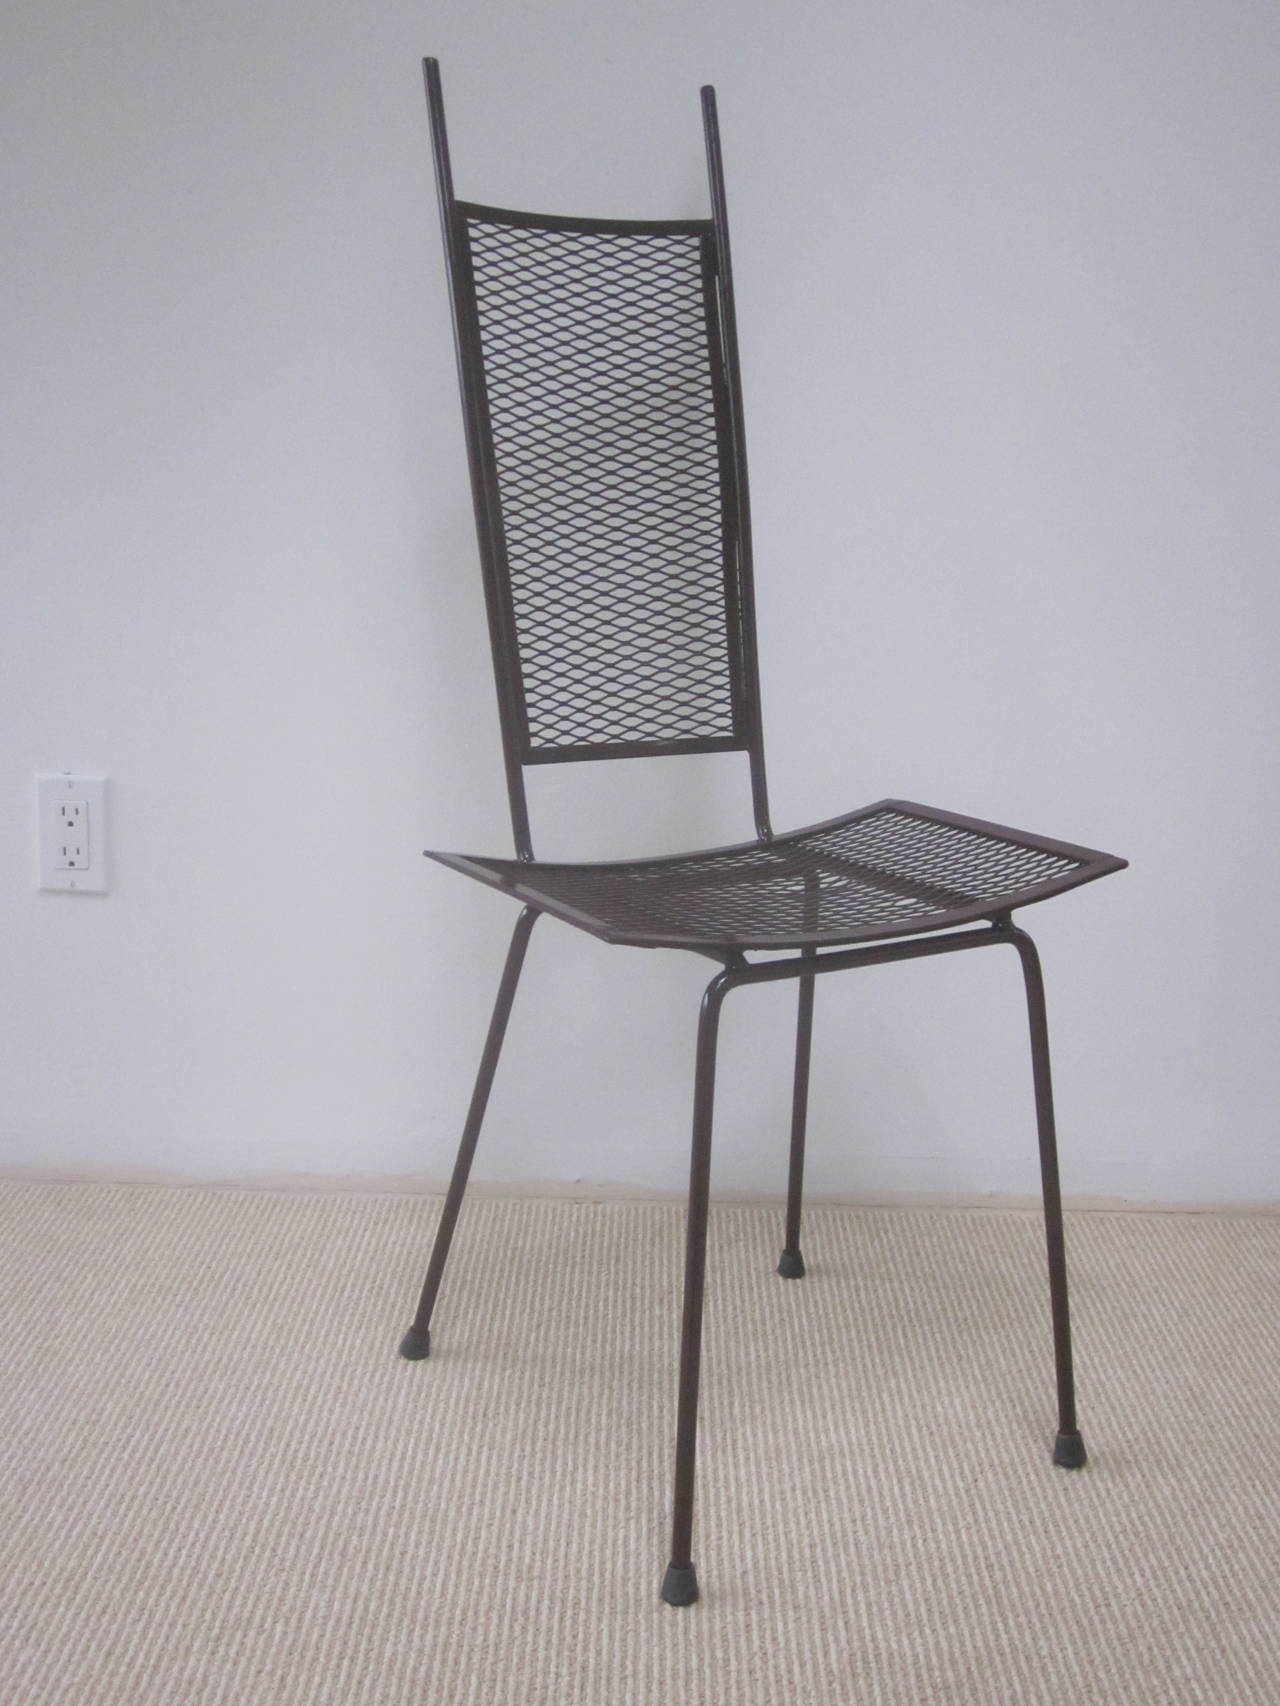 A sober, elegant, handmade Mid-Century Modern side chair in expanded metal showcasing the transparency of it's sleek form and pure lines. Enameled in gloss dark chocolate.